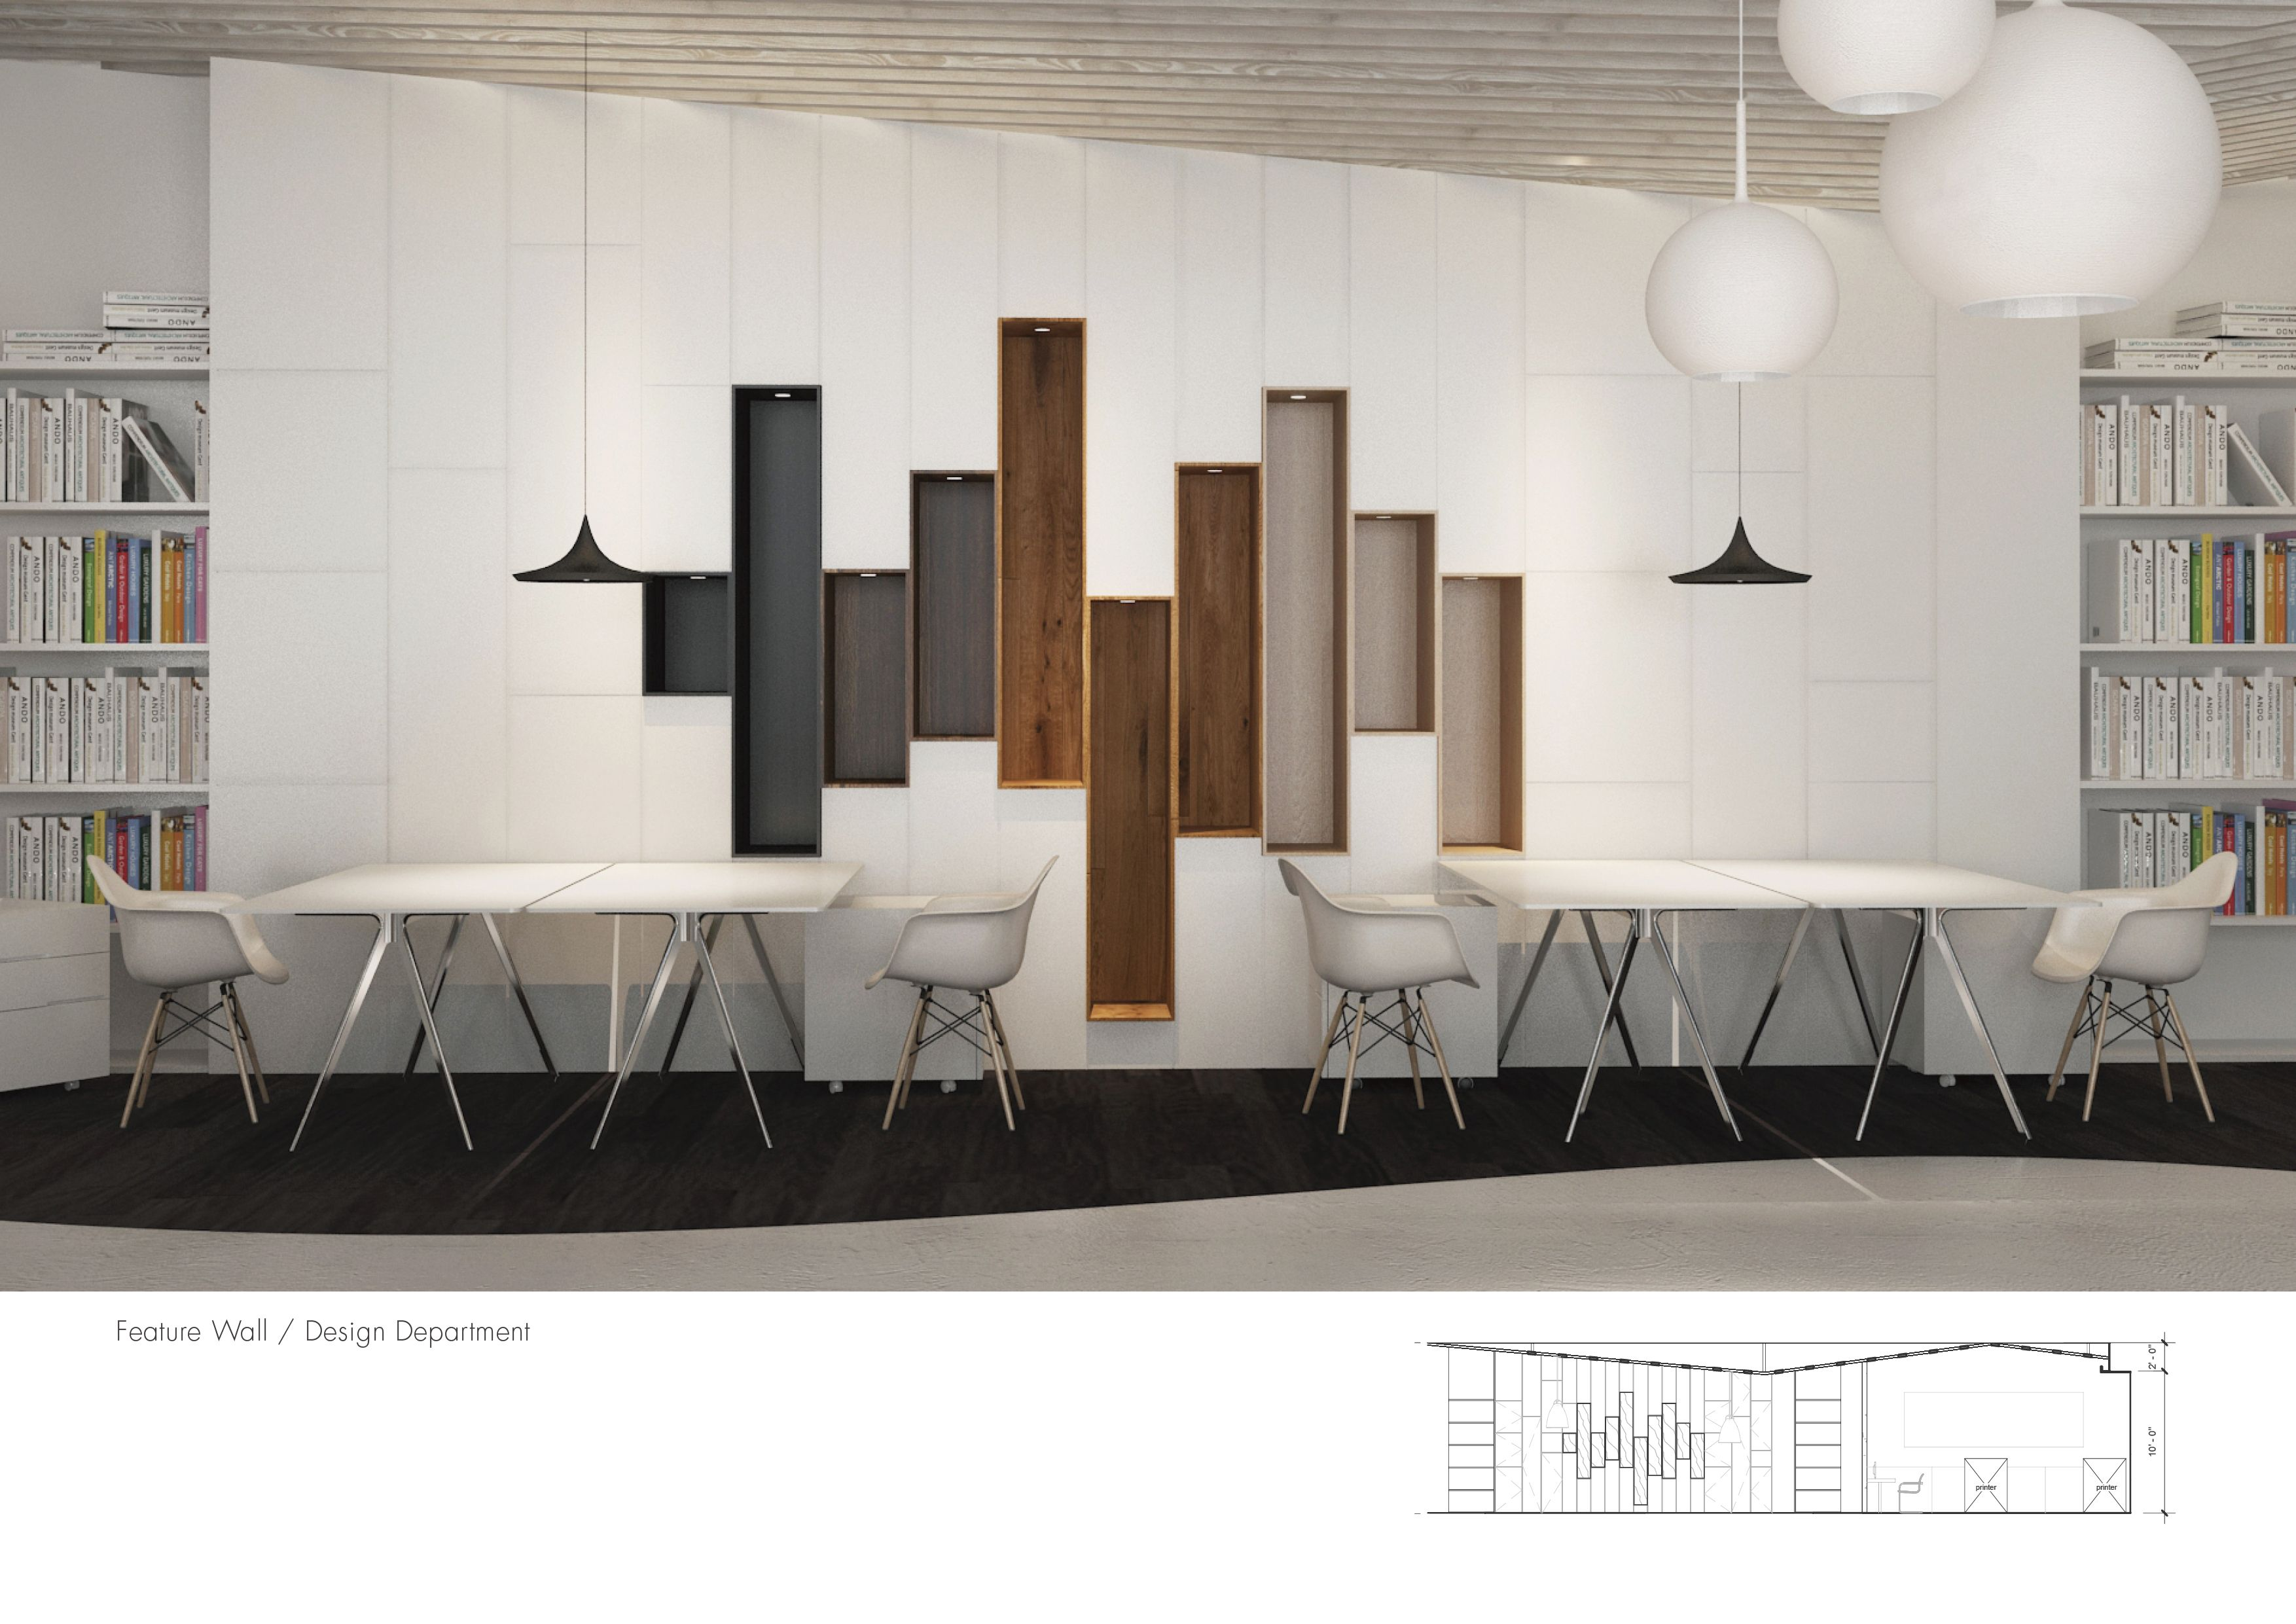 office feature wall. Music And Design Studio - In2 Interior Architecture Feature Wall, Working Office Wall